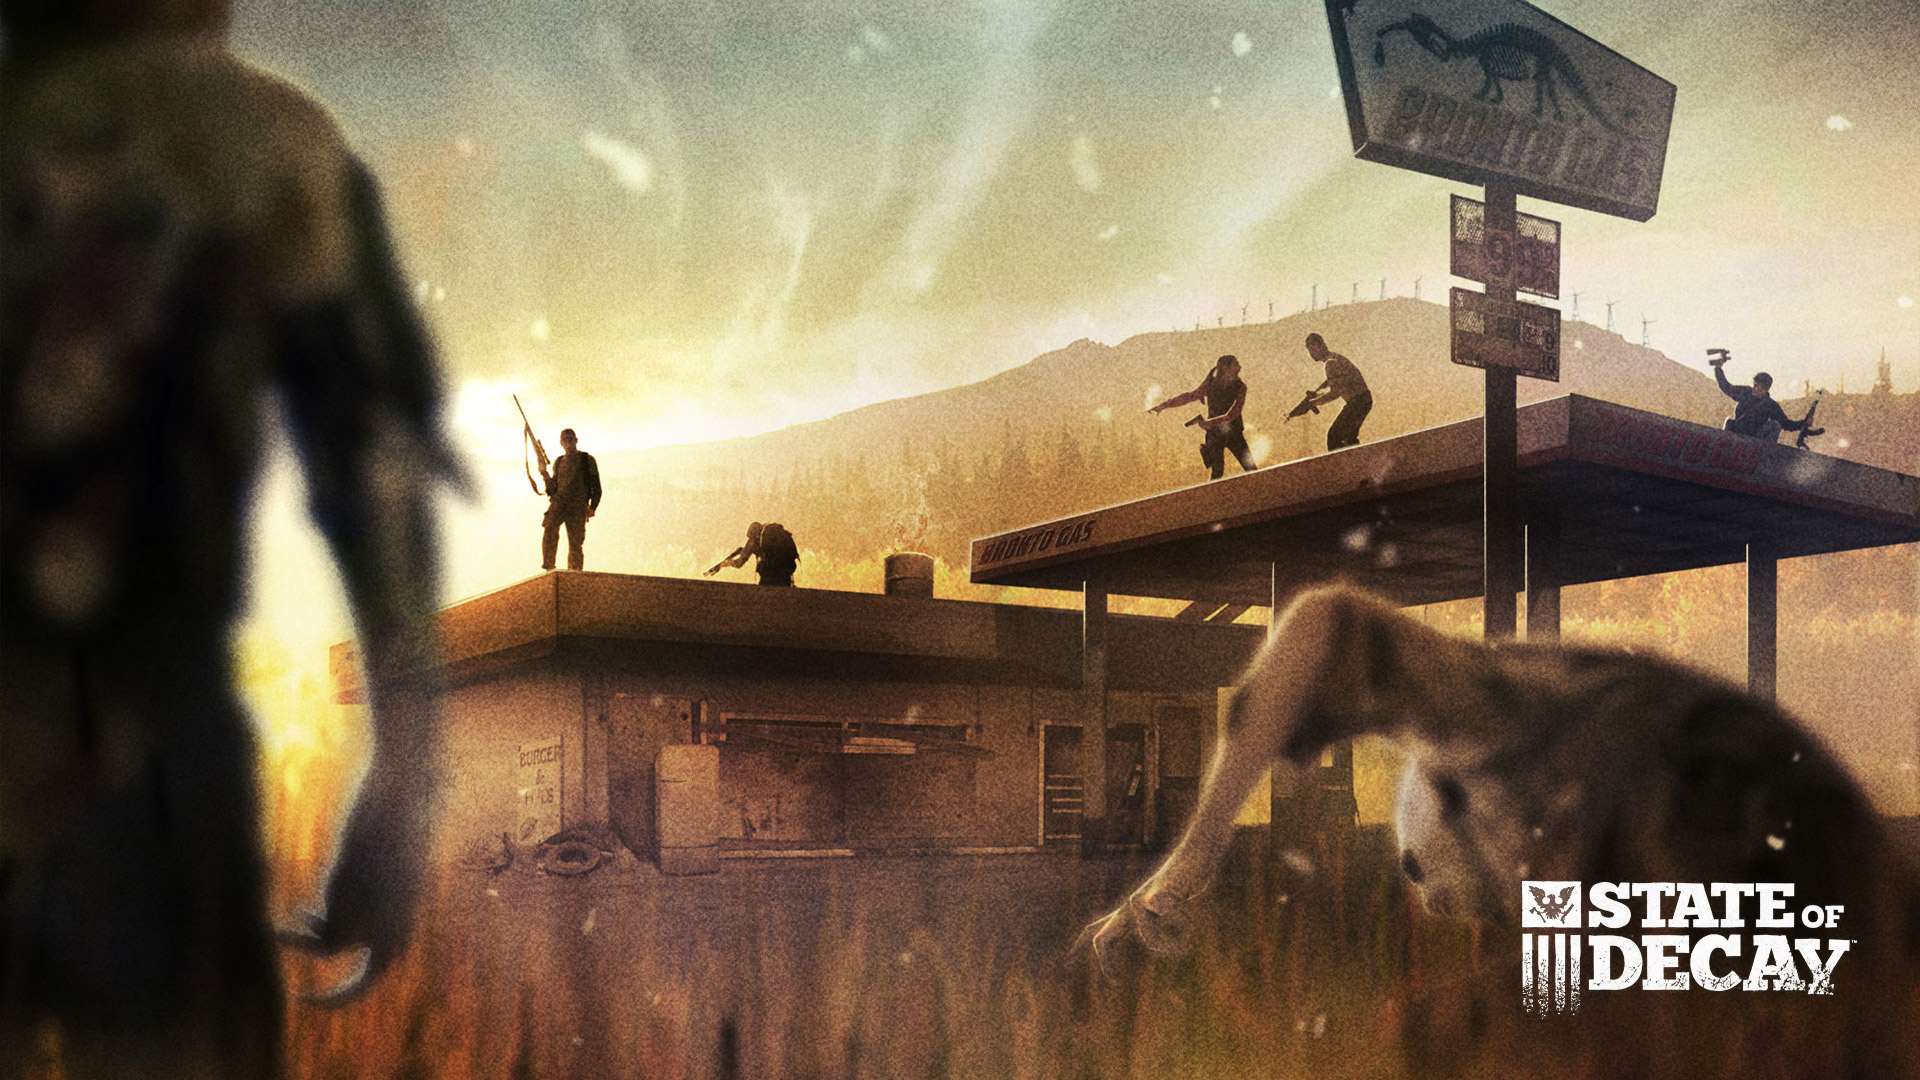 State of Decay Wallpaper in 1920x1080